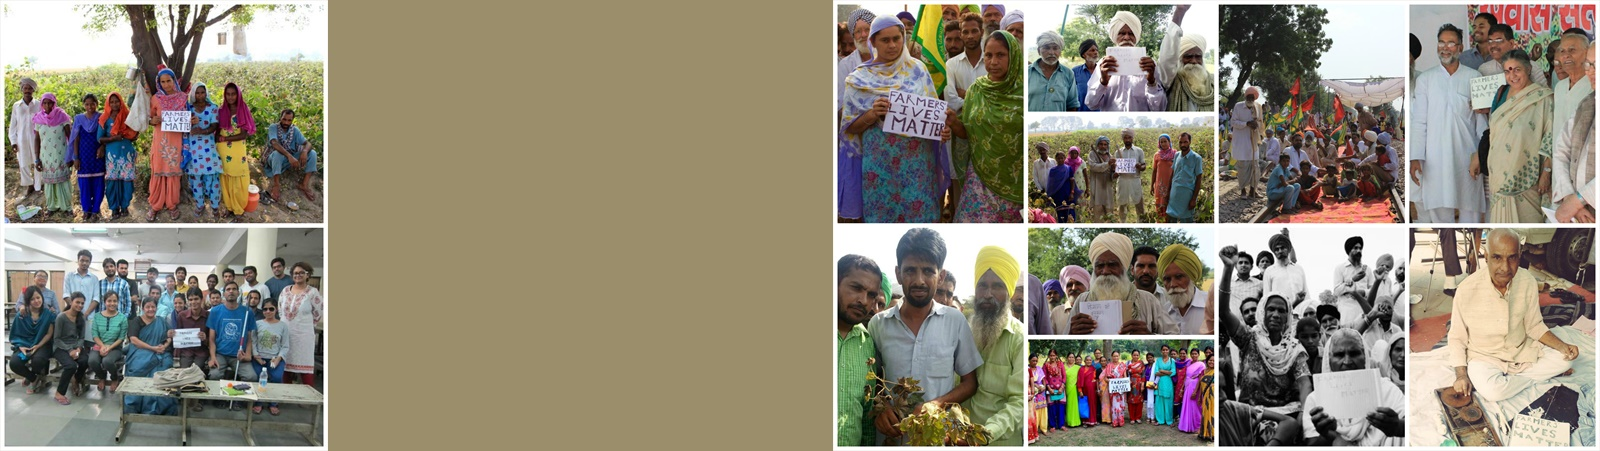 NAVDANYA CAMPAIGN IN SUPPORT OF FARMERS